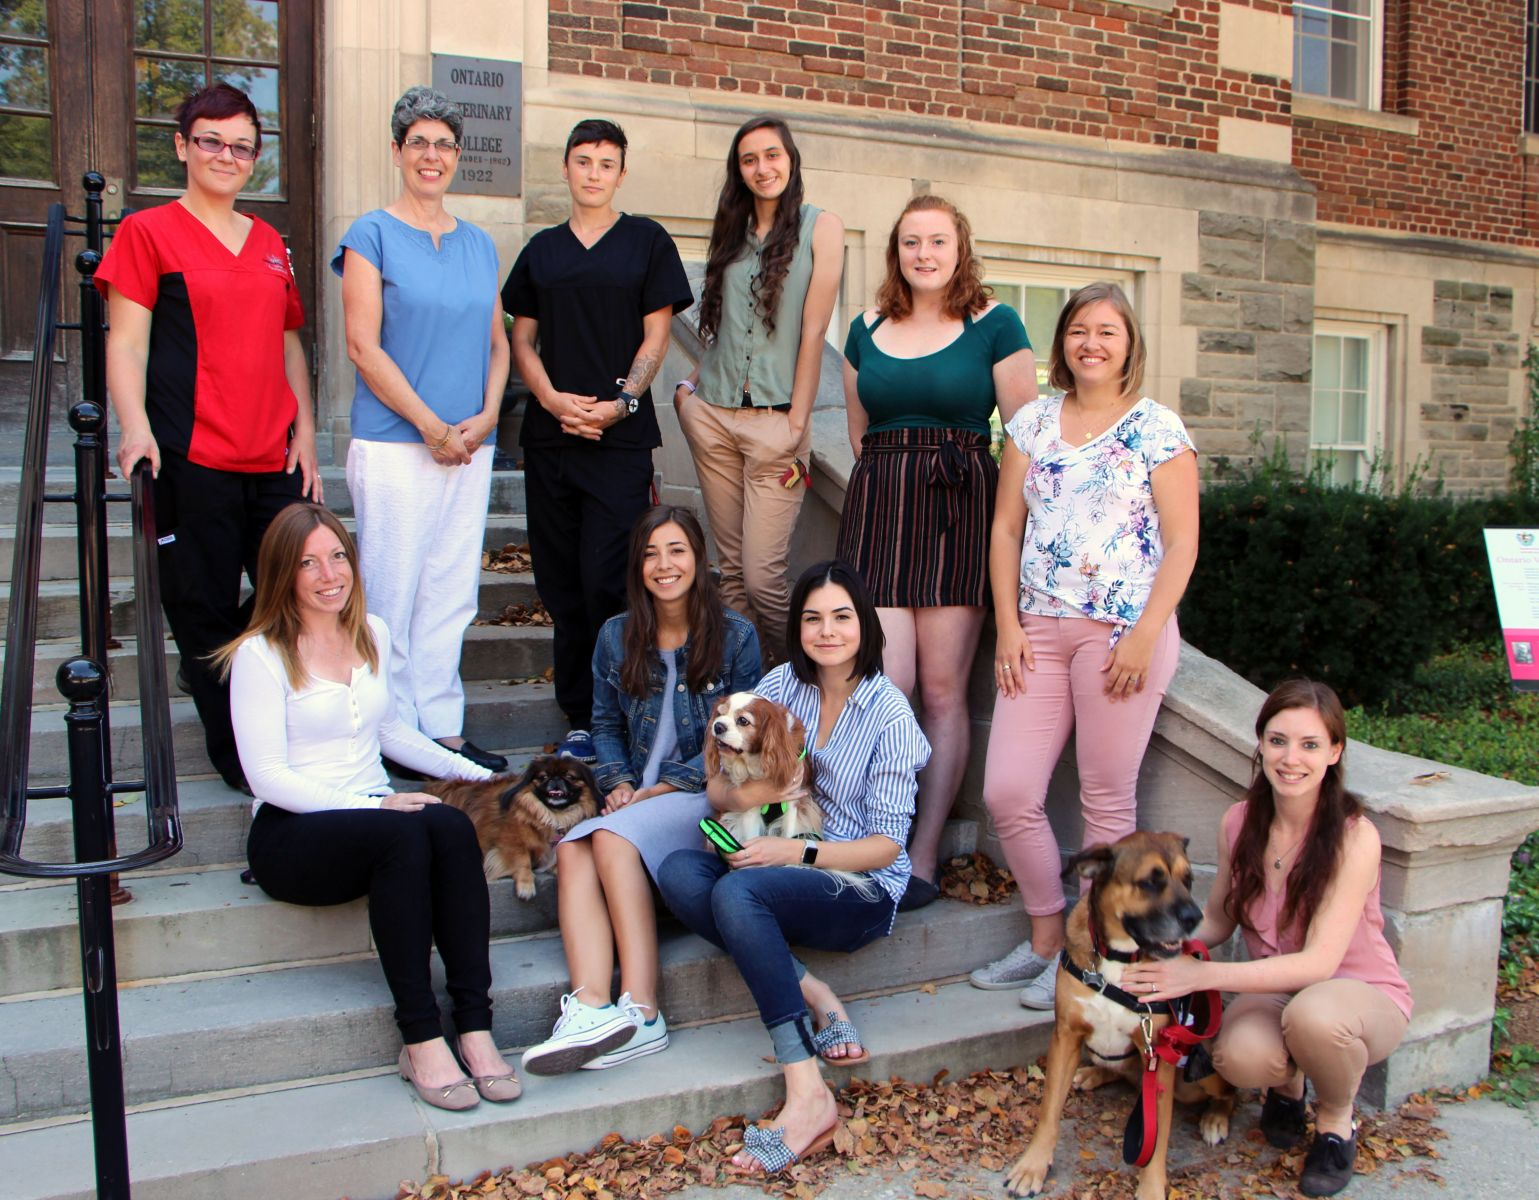 Current and Past Members of the Ontario Veterinary College Nutrition Team